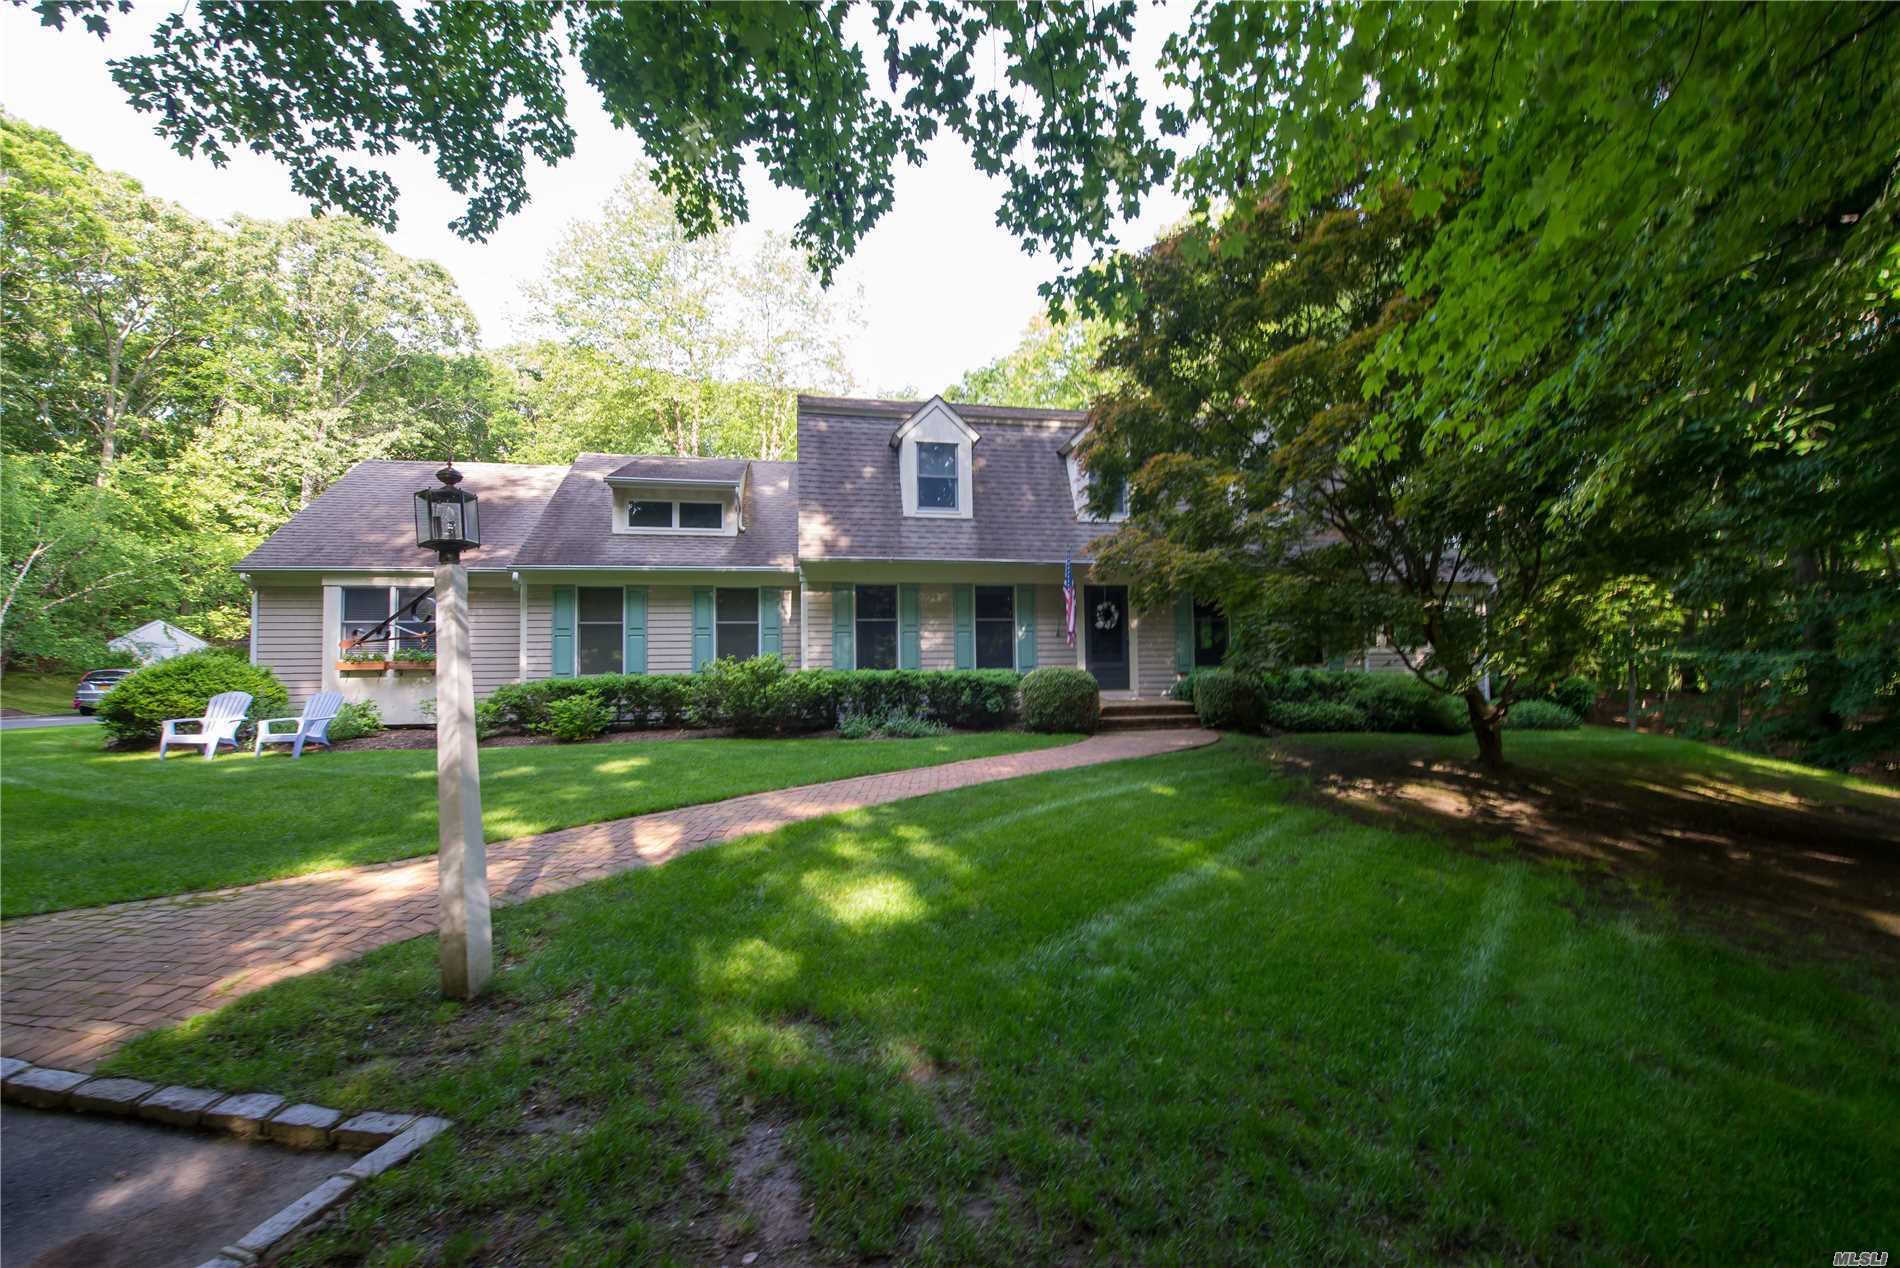 Beautiful Colonial At The End Of A Private Cul-De-Sac. 1.52 Of Beautifuly Landscaped Grounds. It Has A Heated In The Ground Pool W/Waterfall, Hot Tub, Slate Pstio With A Pergola.Chefs Kitchen With Double Ovens.Kitchen Aid Refig, Gas Stove, Granite Counter Tops. Beautiful 3 Seasons Sunroom With Screens, Wood Floors And So Much More!!